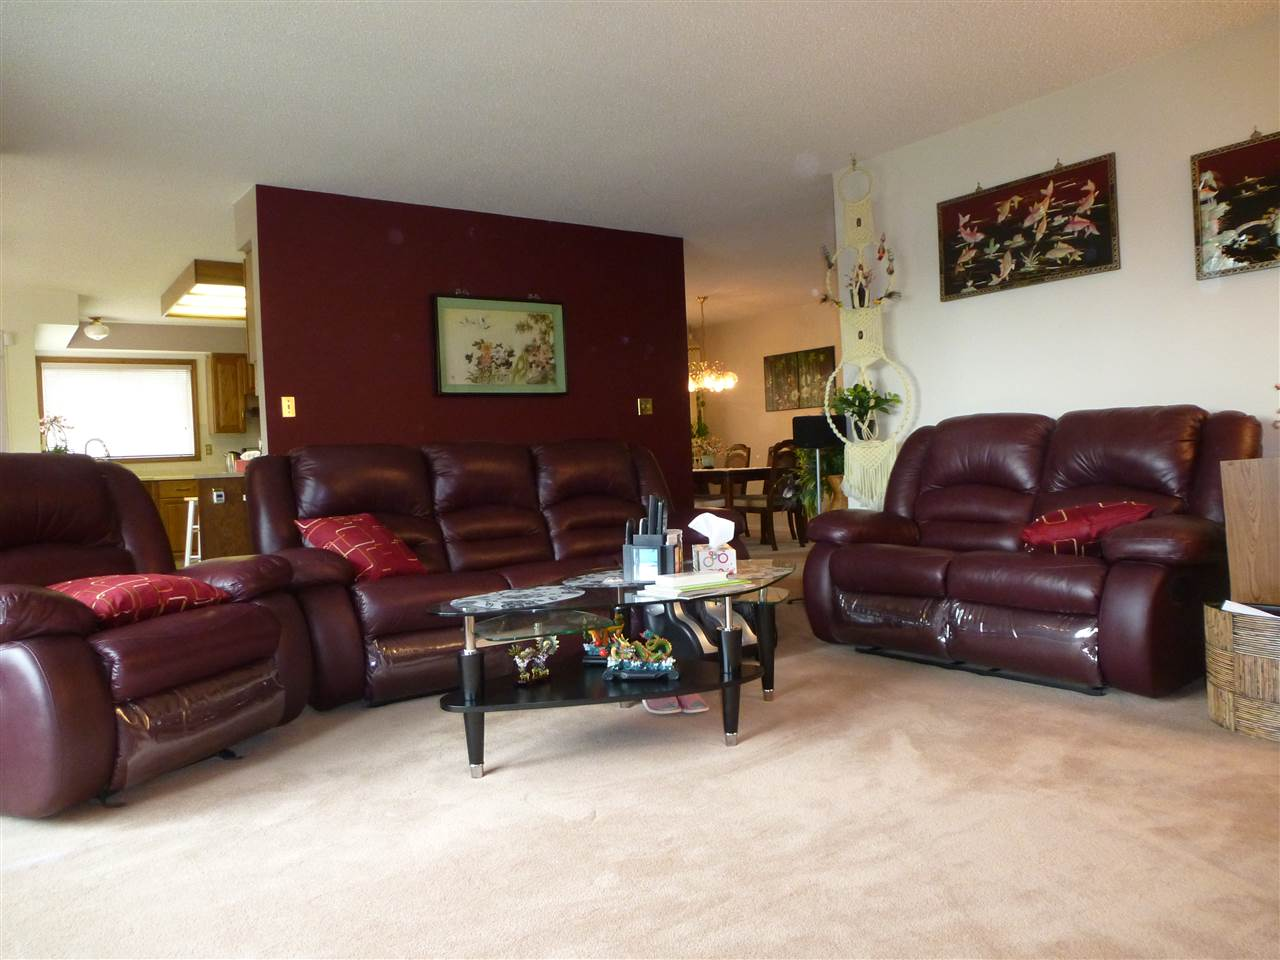 Photo 16: 315 ORMSBY Road in Edmonton: Zone 20 House for sale : MLS(r) # E4059577